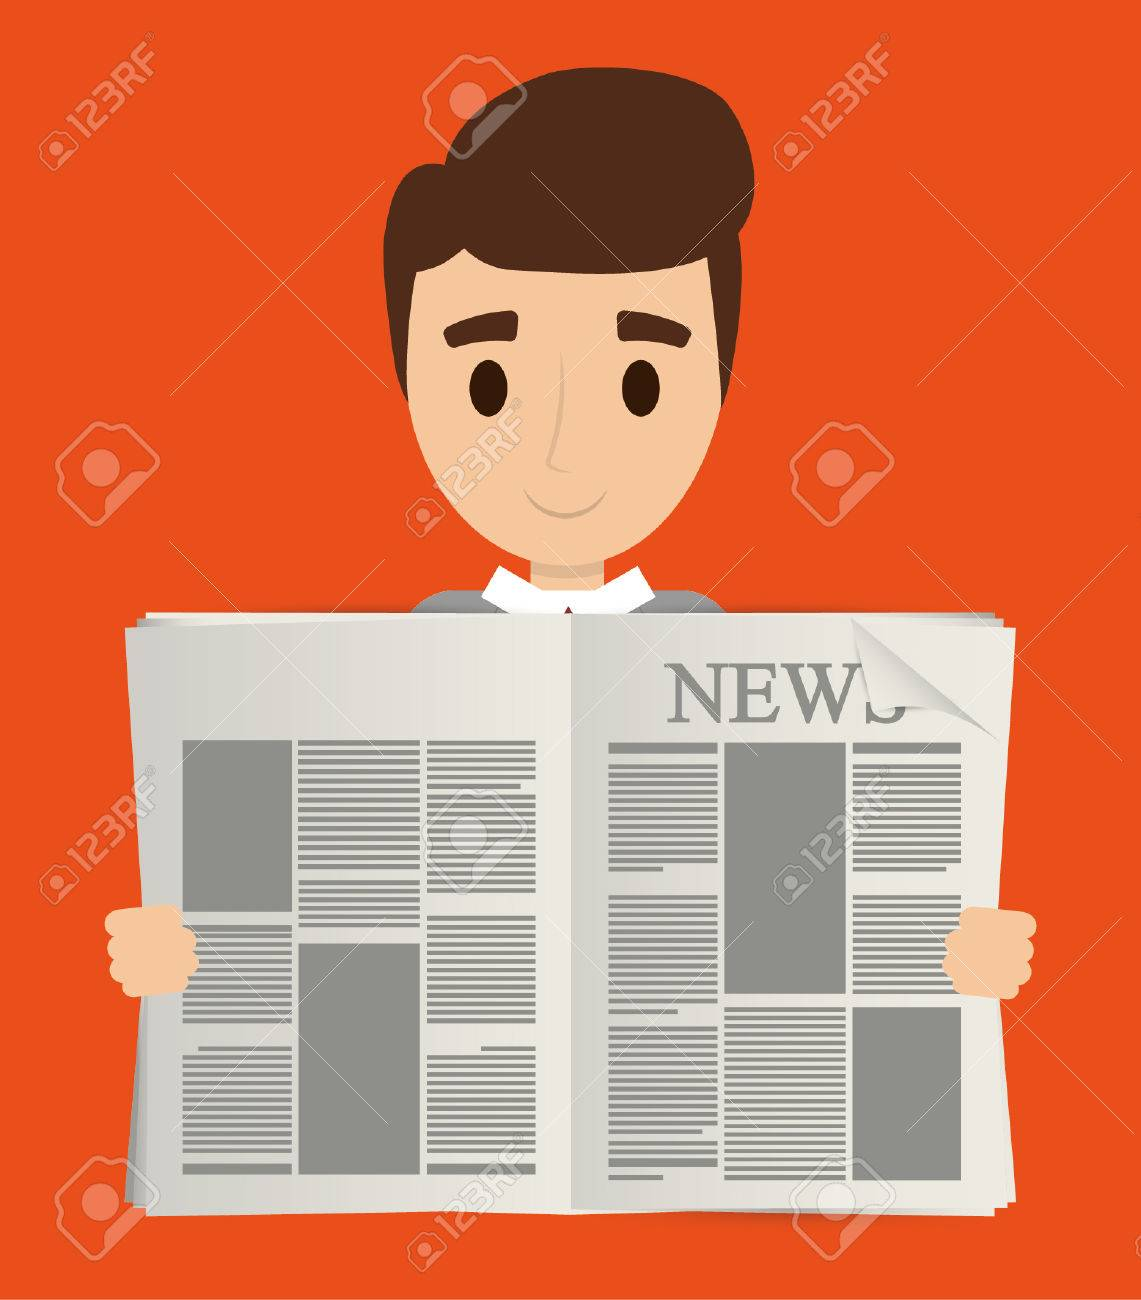 man cartoon reading newspaper icon. news communication and media